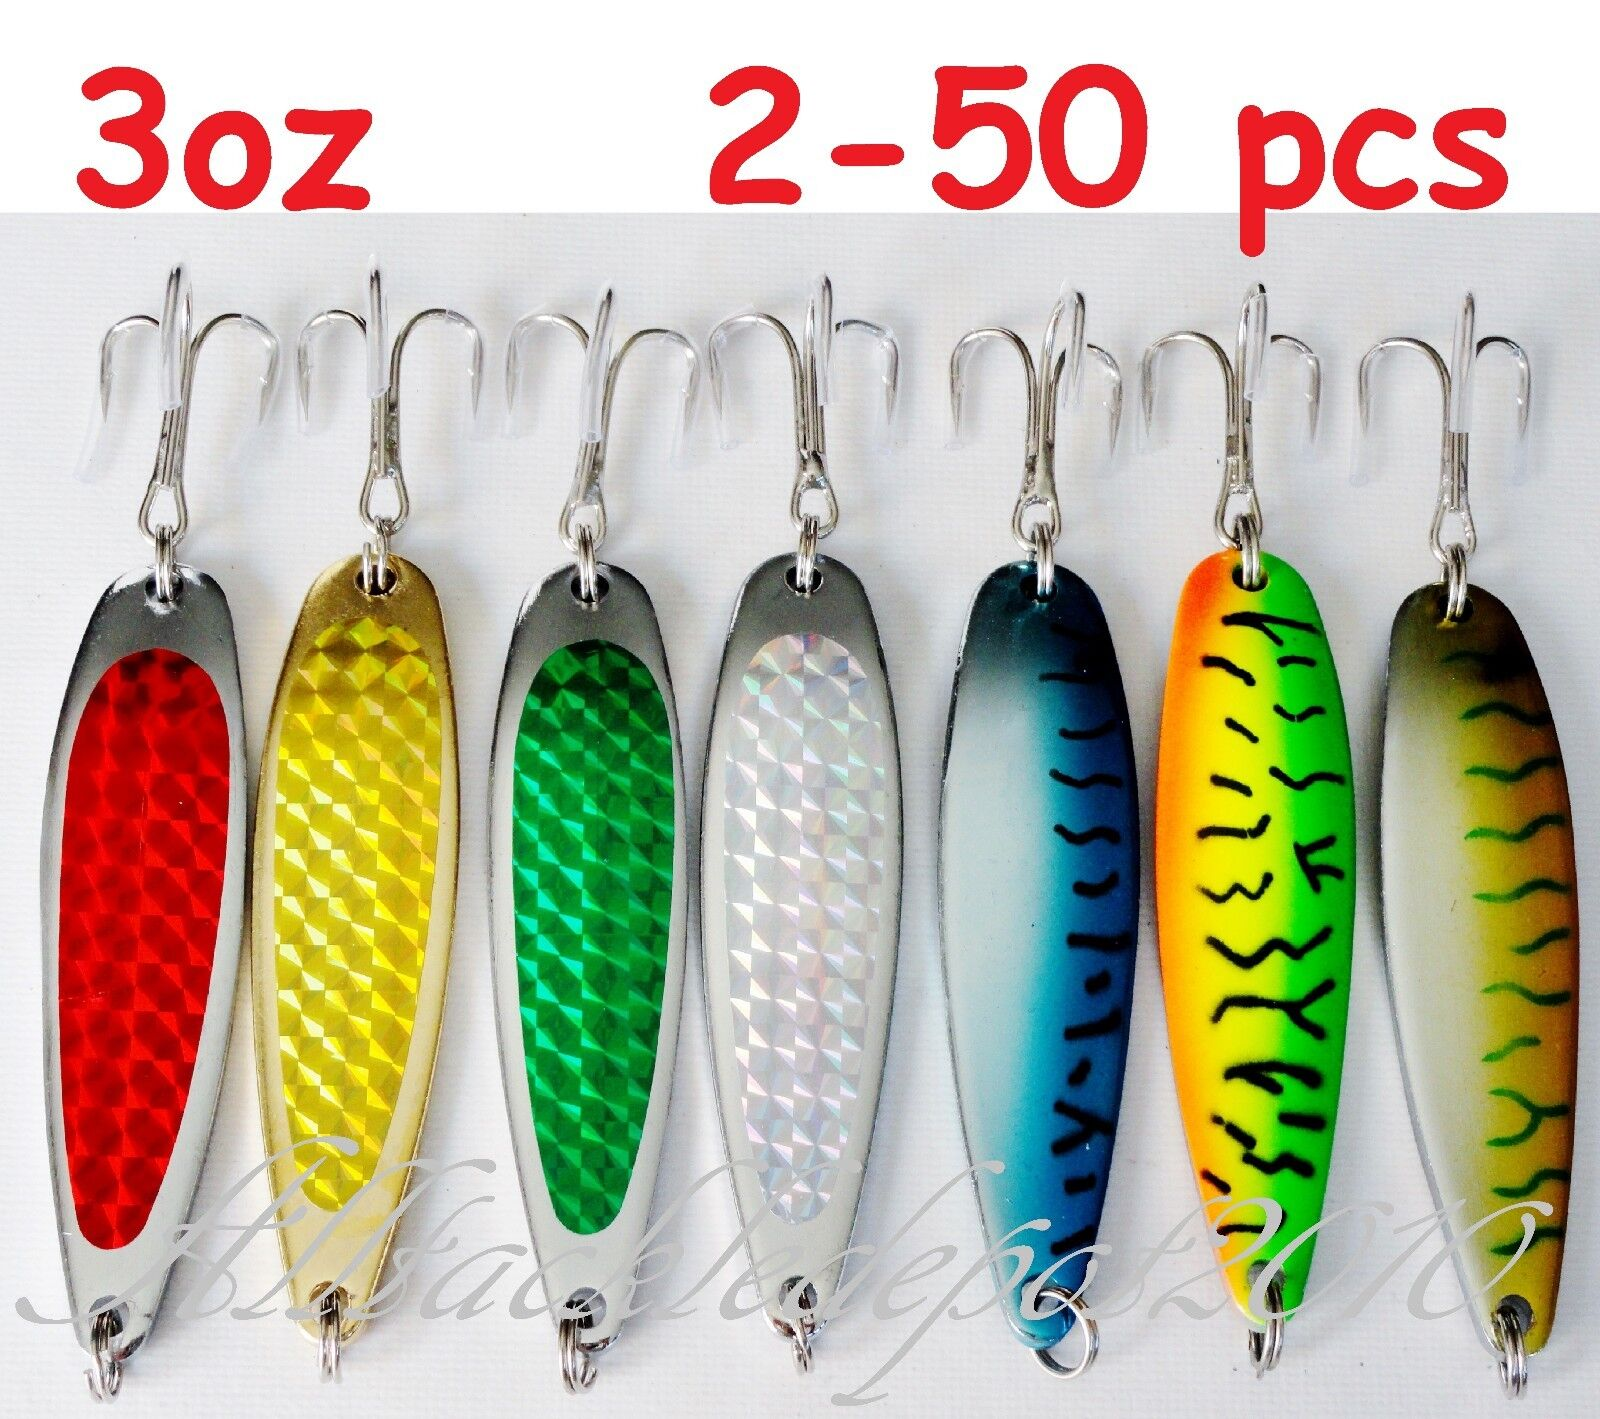 2-50 pcs Casting 3oz Crocodile Spoons Fishing Lures-Choose color and Qty